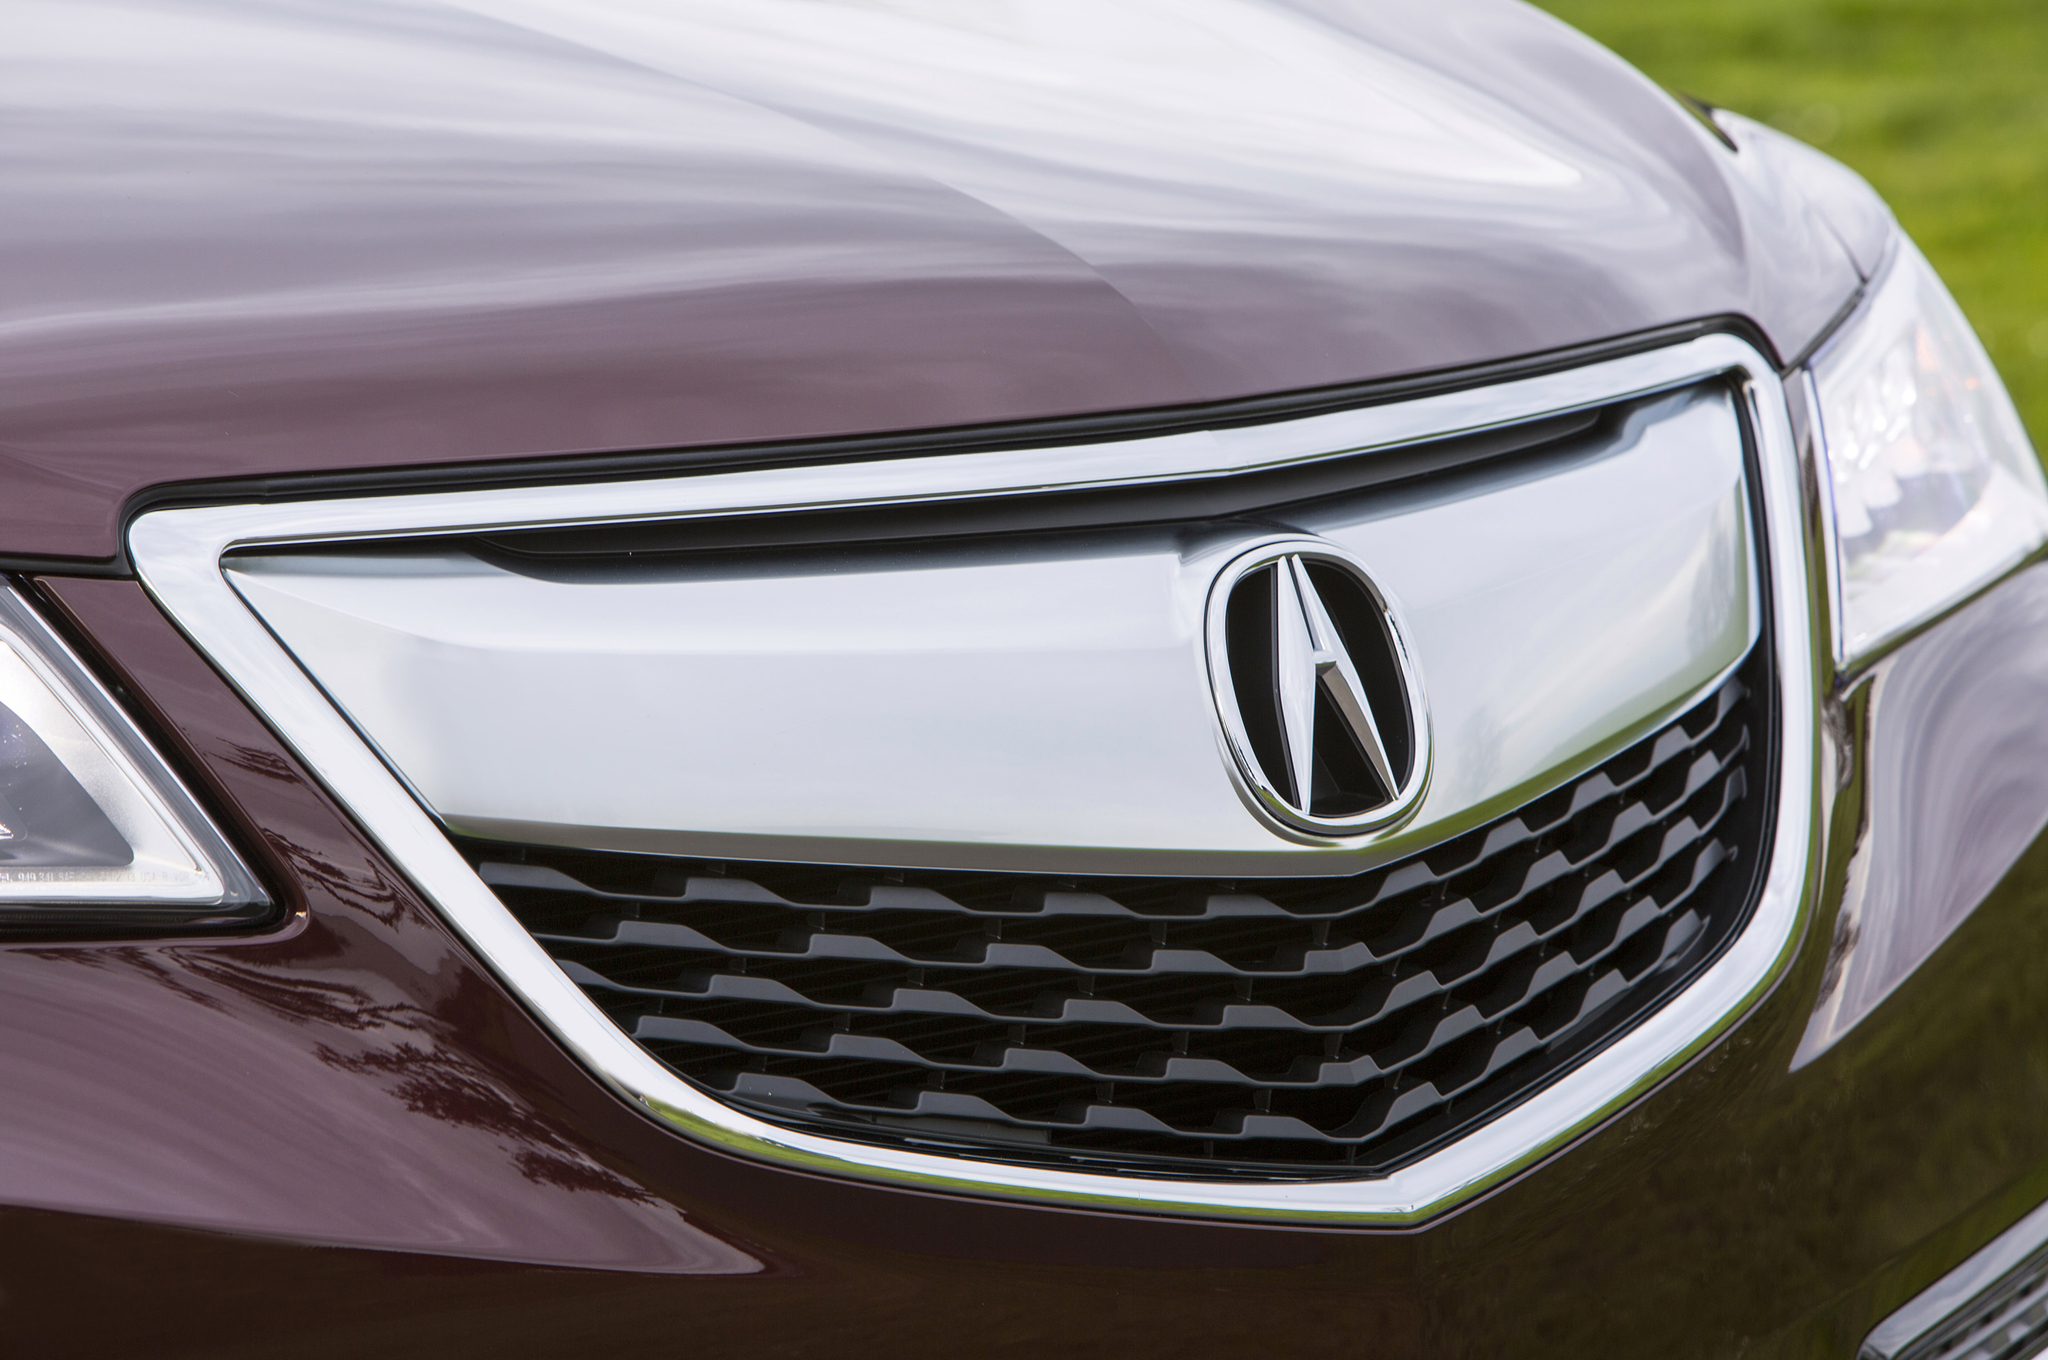 Acura Car Logo Desktop Wallpapers 7 2048x1360 px ~ PickyWallpapers